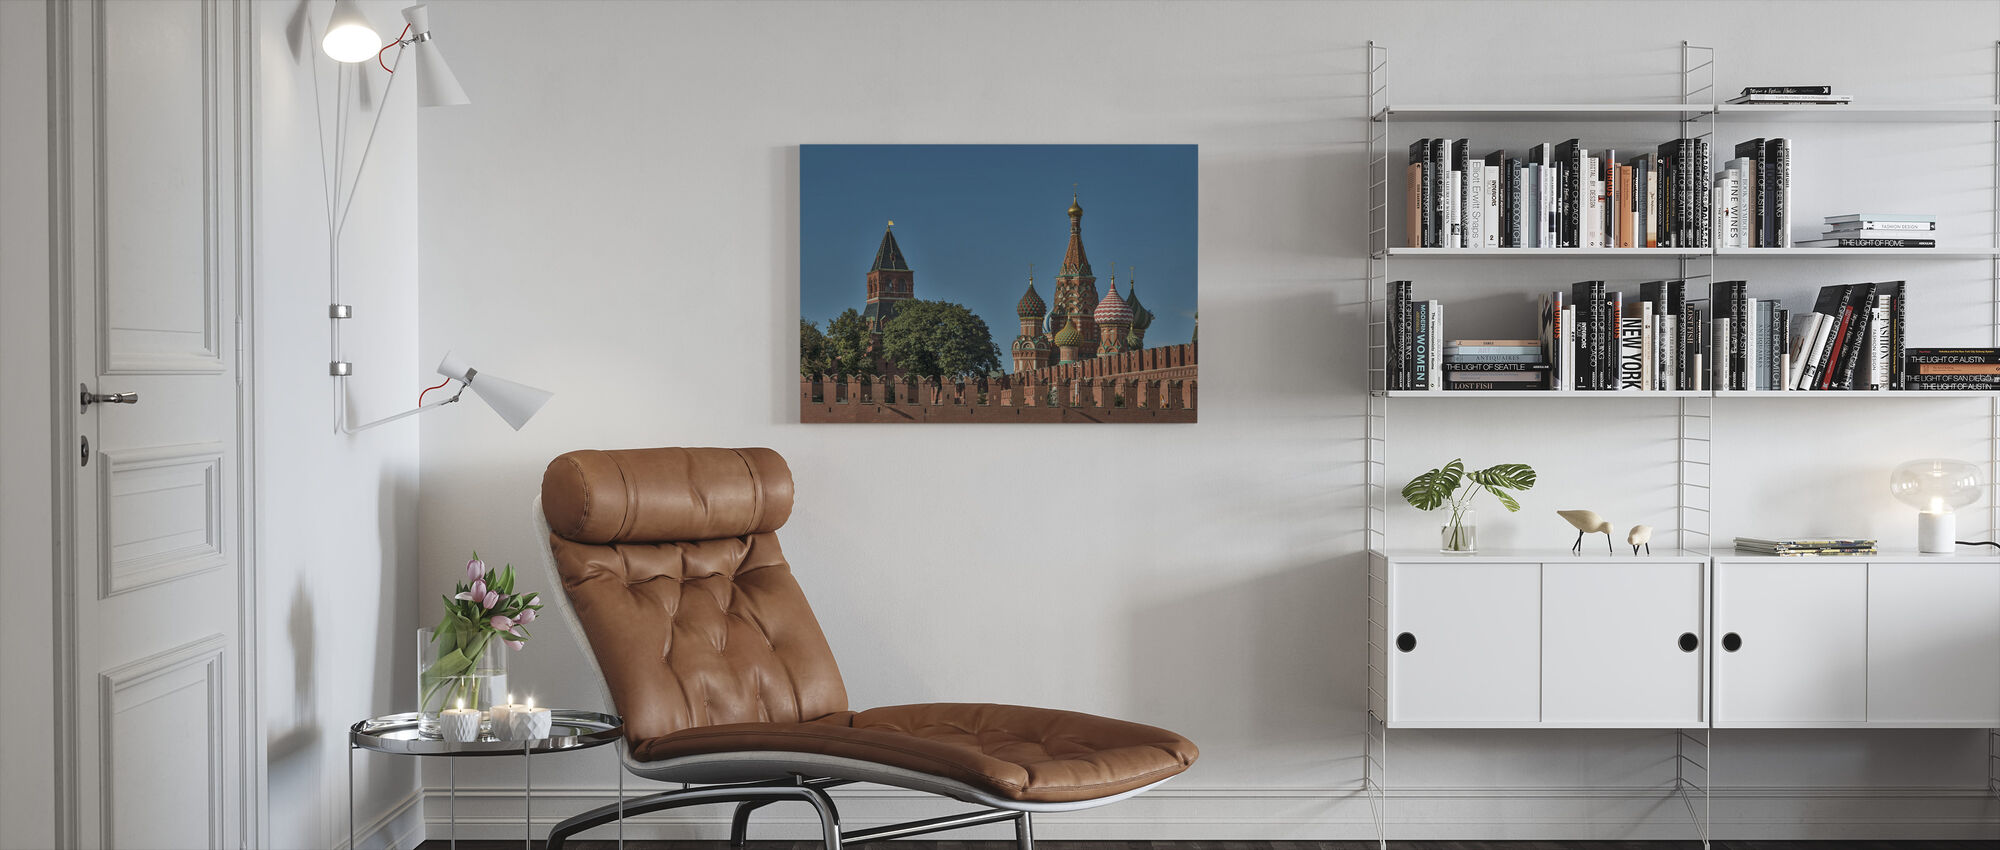 Spasskaya Clock Tower, Moscow - Canvas print - Living Room